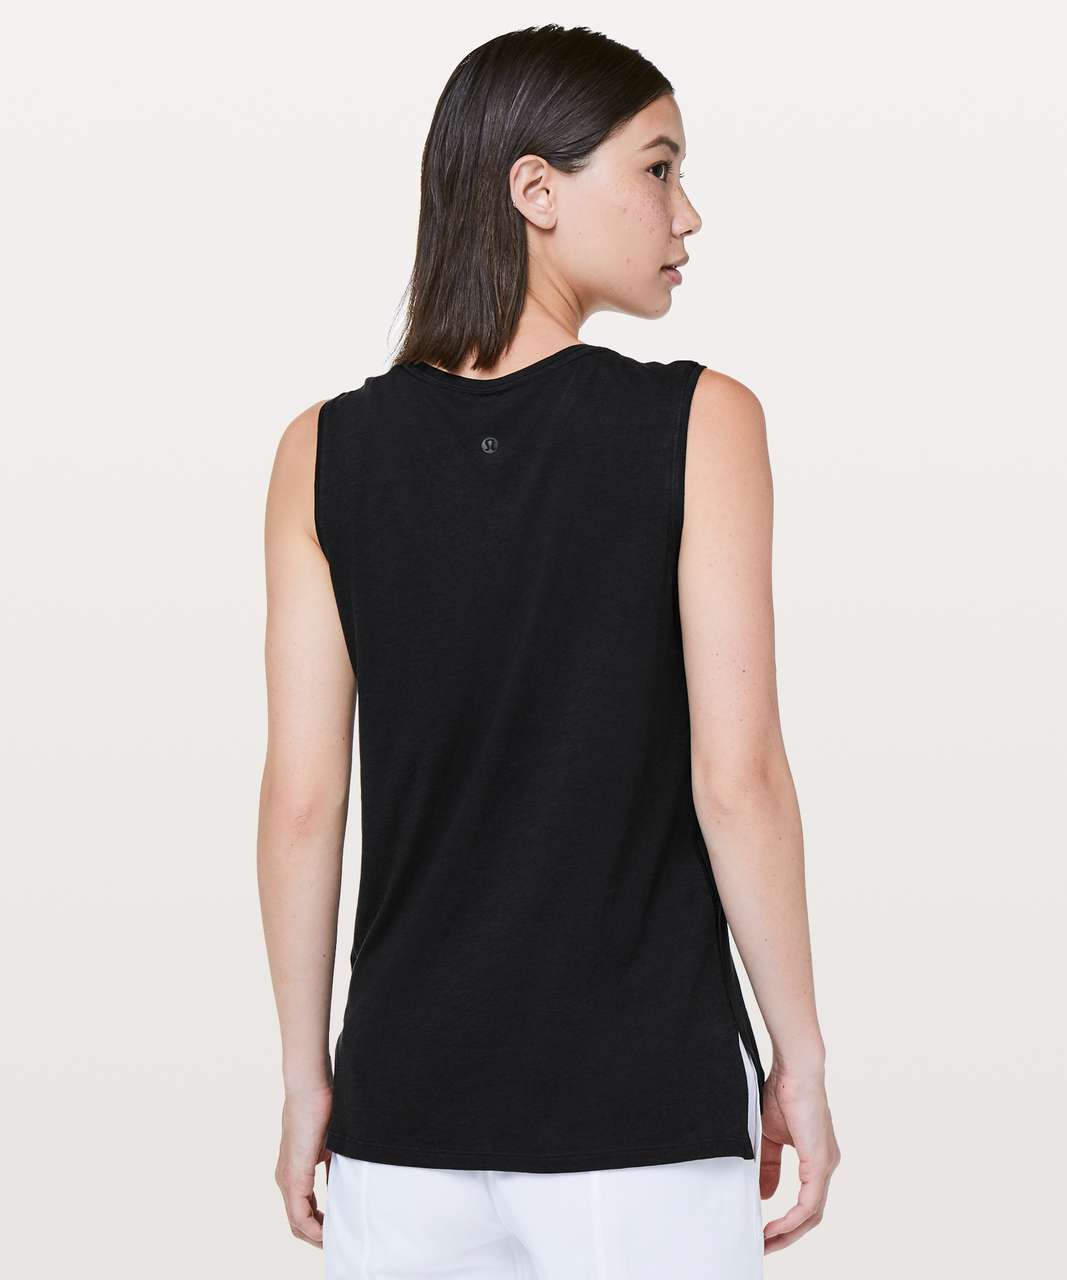 Lululemon Love Sleeveless Tank *Light - Black (First Release)